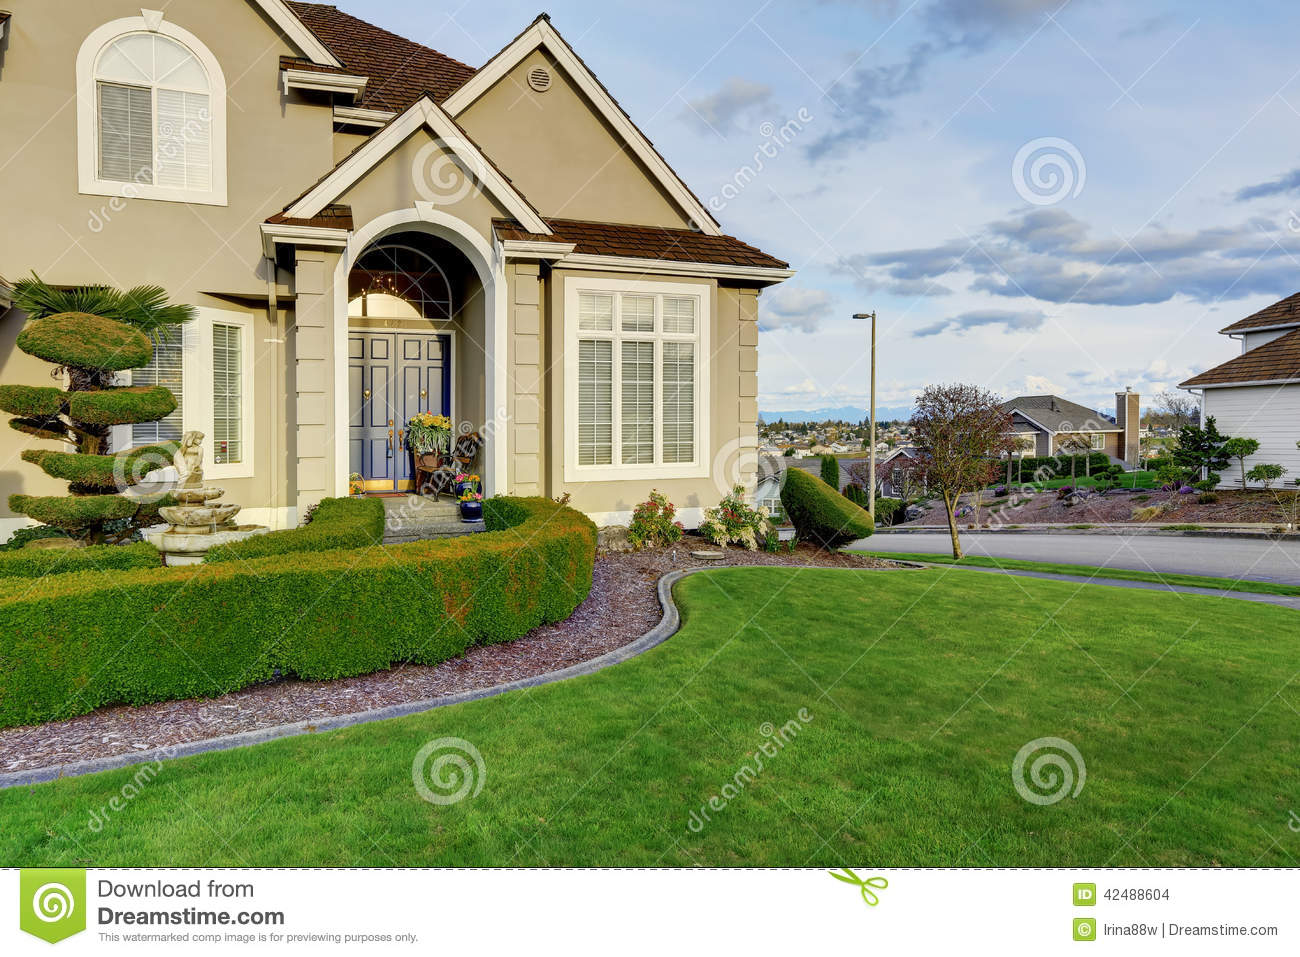 Luxury House Exterior luxury house exterior. entrance porch view stock photo - image